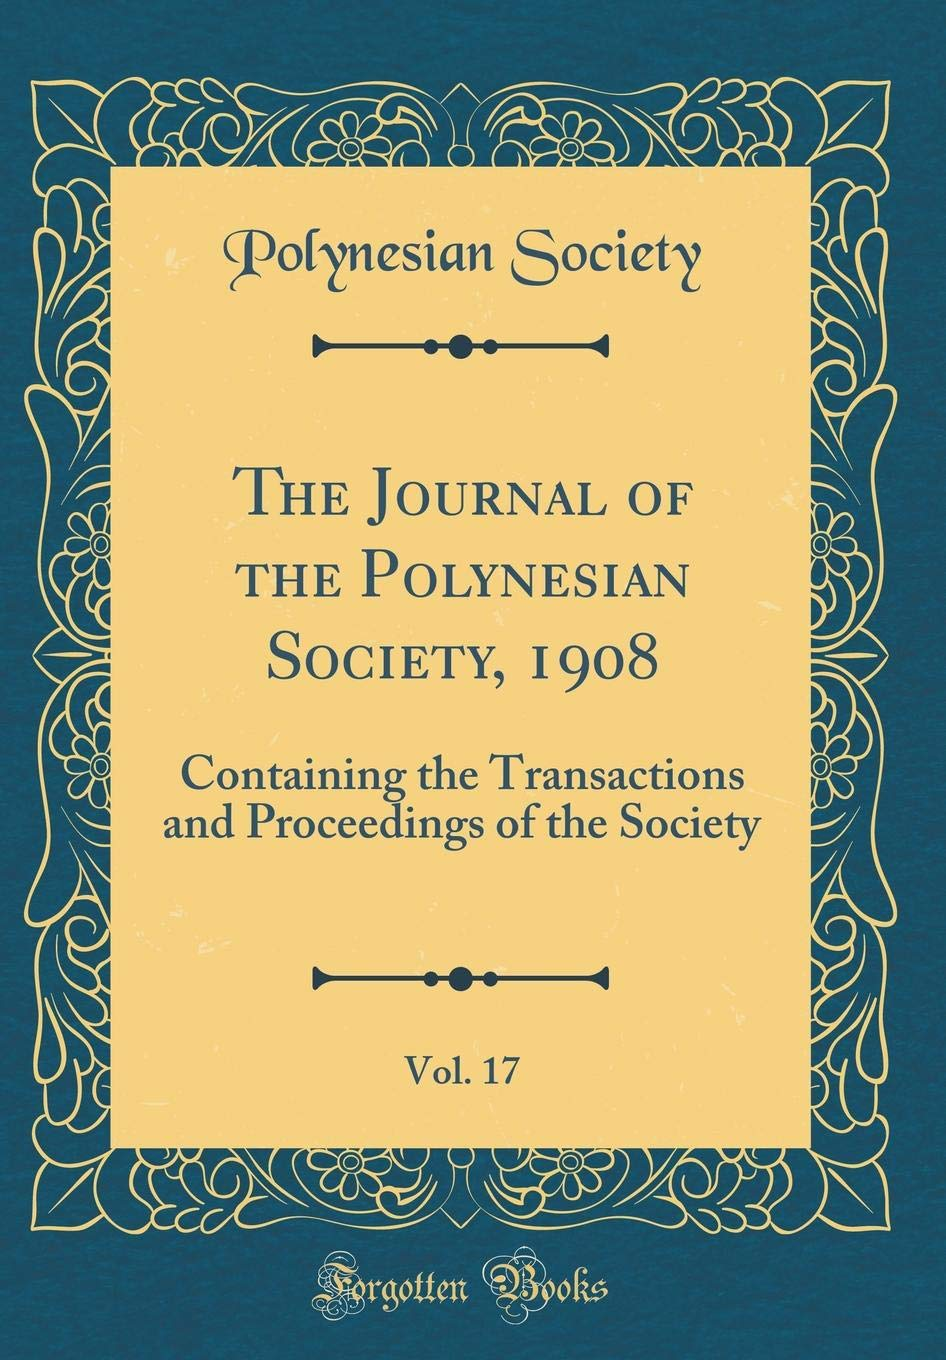 The Journal of the Polynesian Society, 1908, Vol. 17: Containing the Transactions and Proceedings of the Society (Classic Reprint) pdf